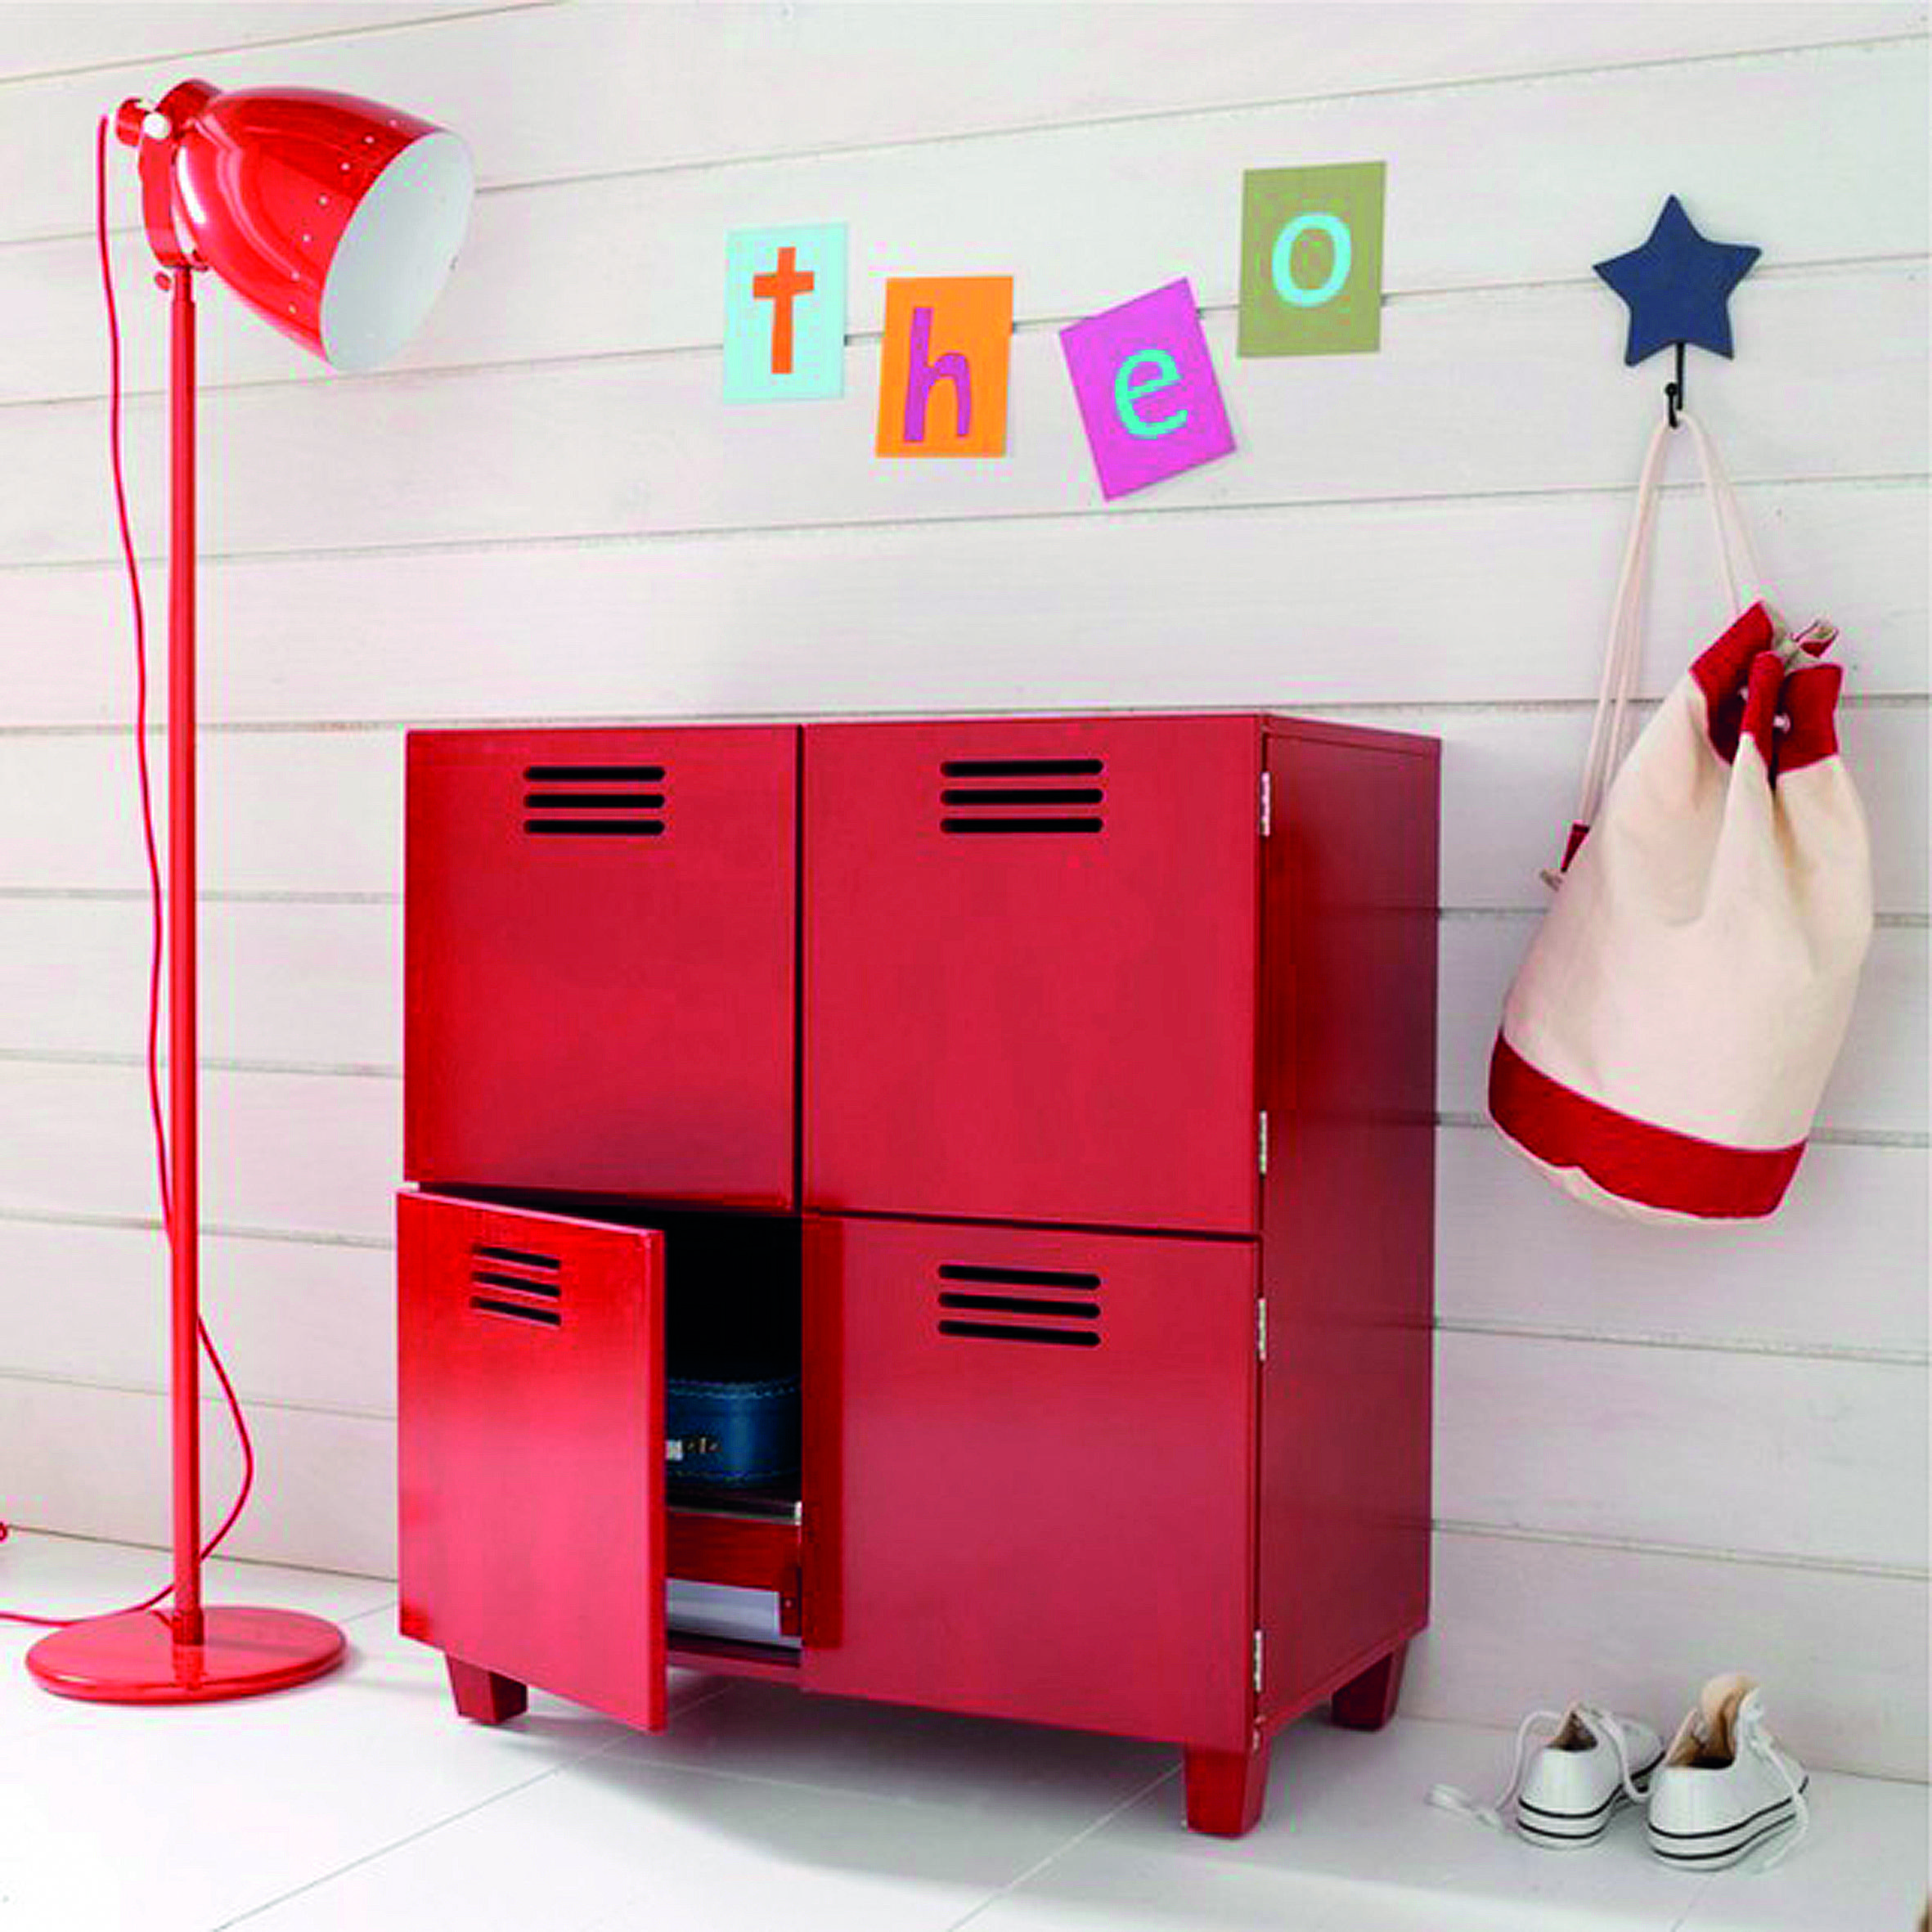 Ideas, trucos y decoración infantil